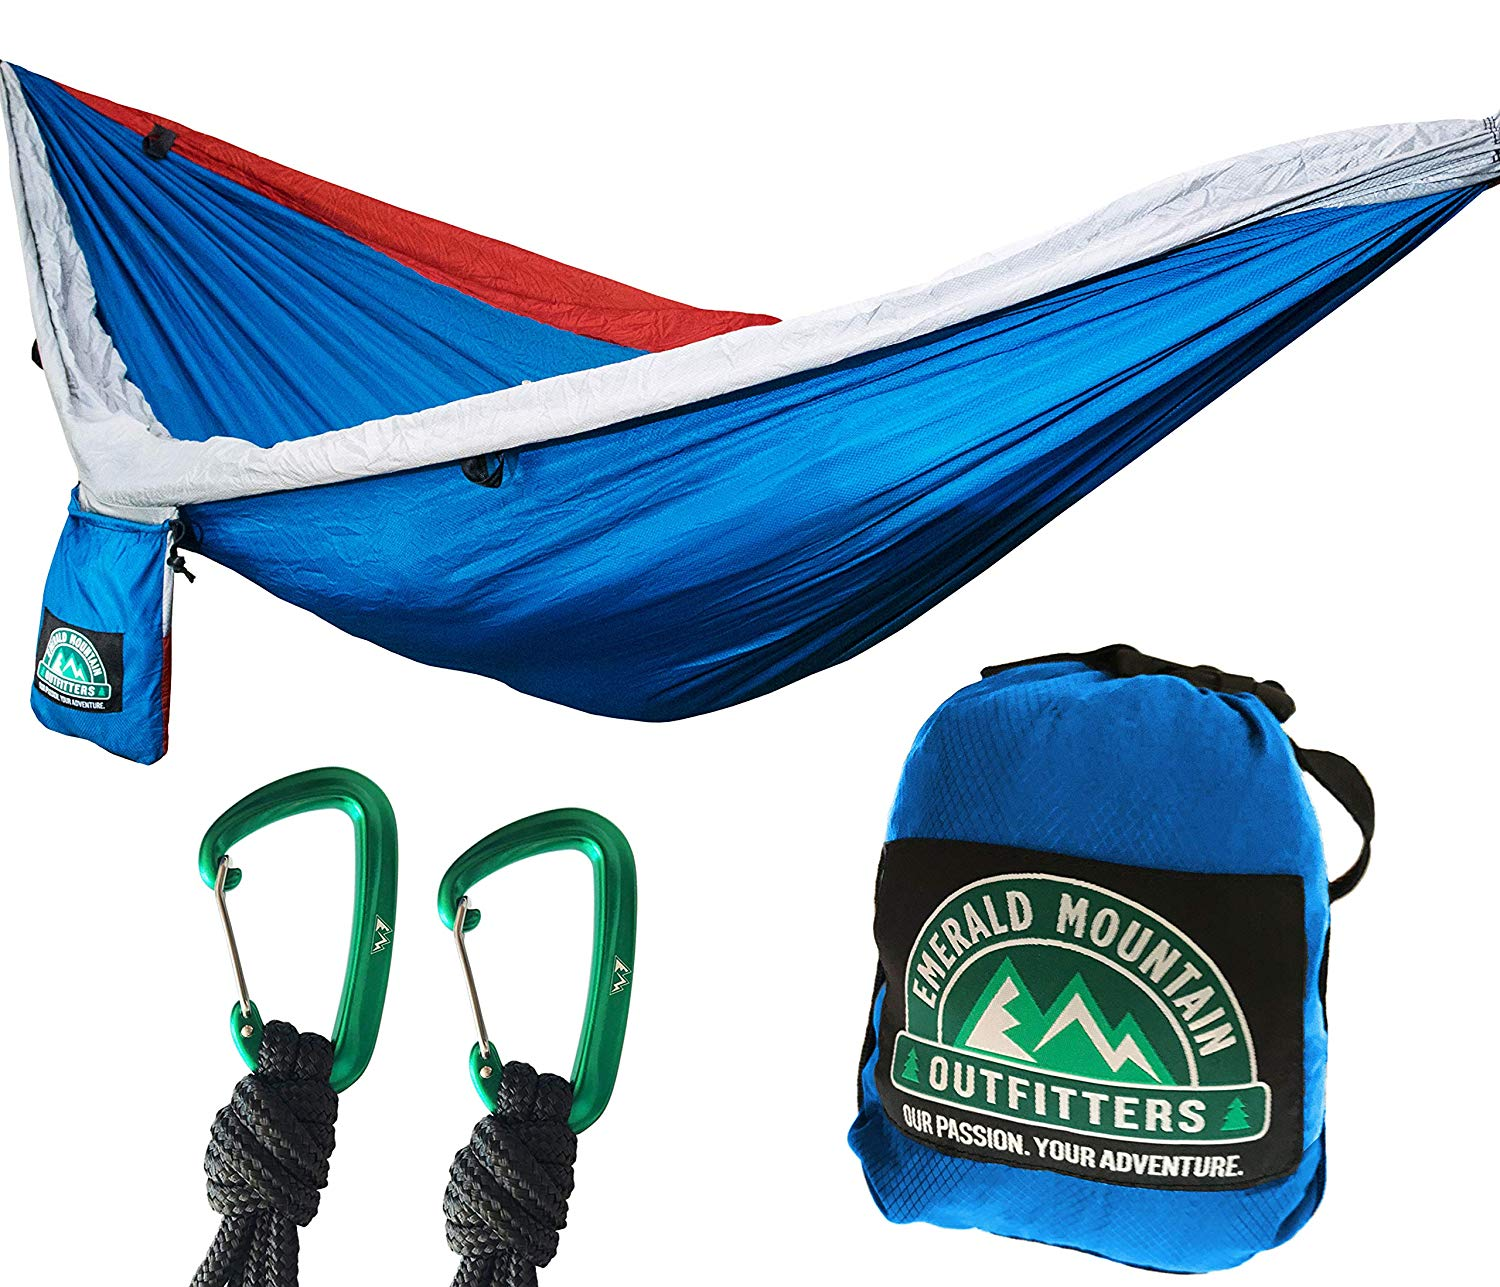 Emerald Mountain Double Camping Hammock